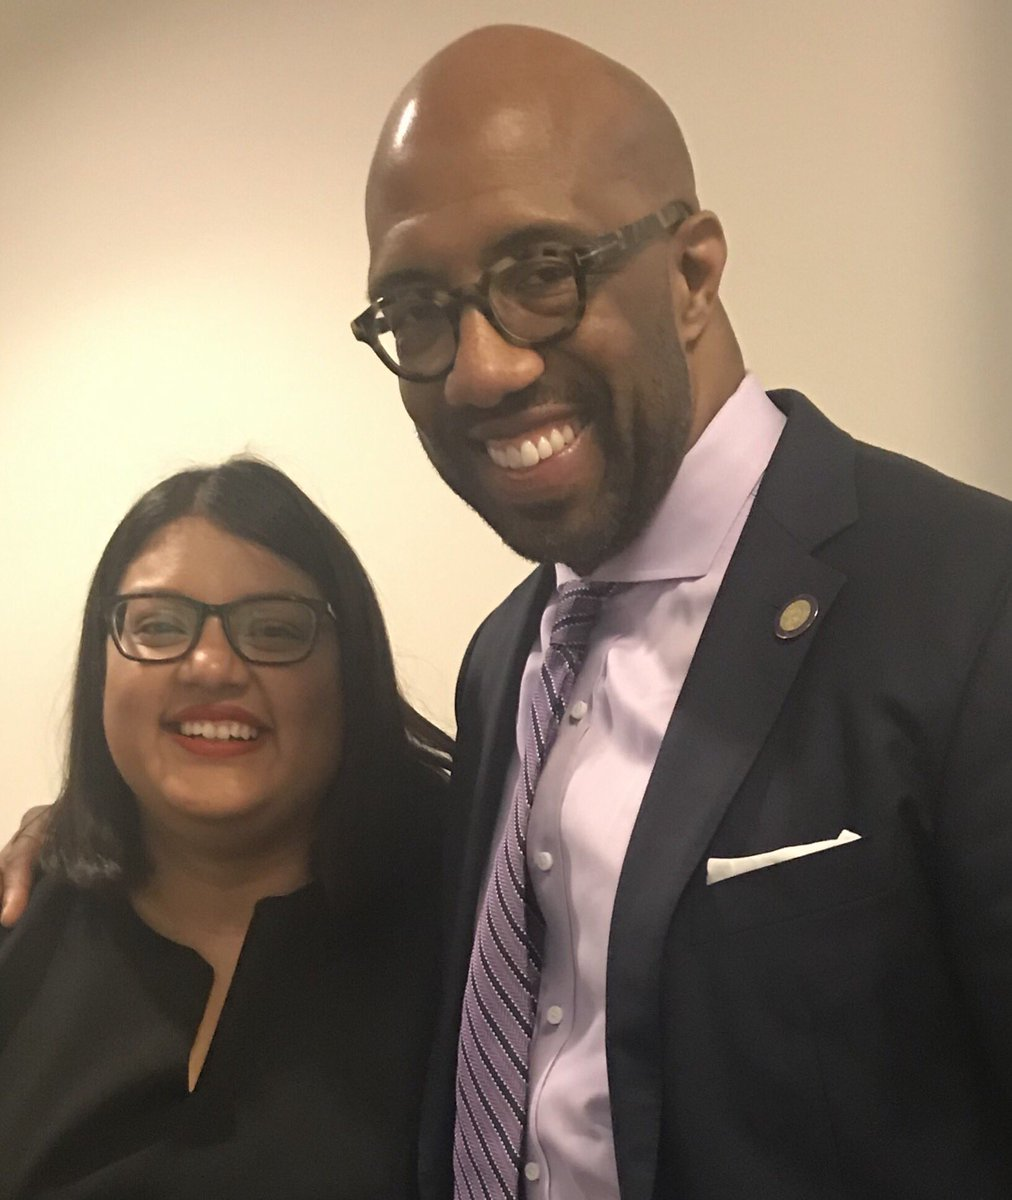 Loved running into @michaelsorrell and the amazing students @PaulQuinnTigers in Austin today. #ChangeMakers